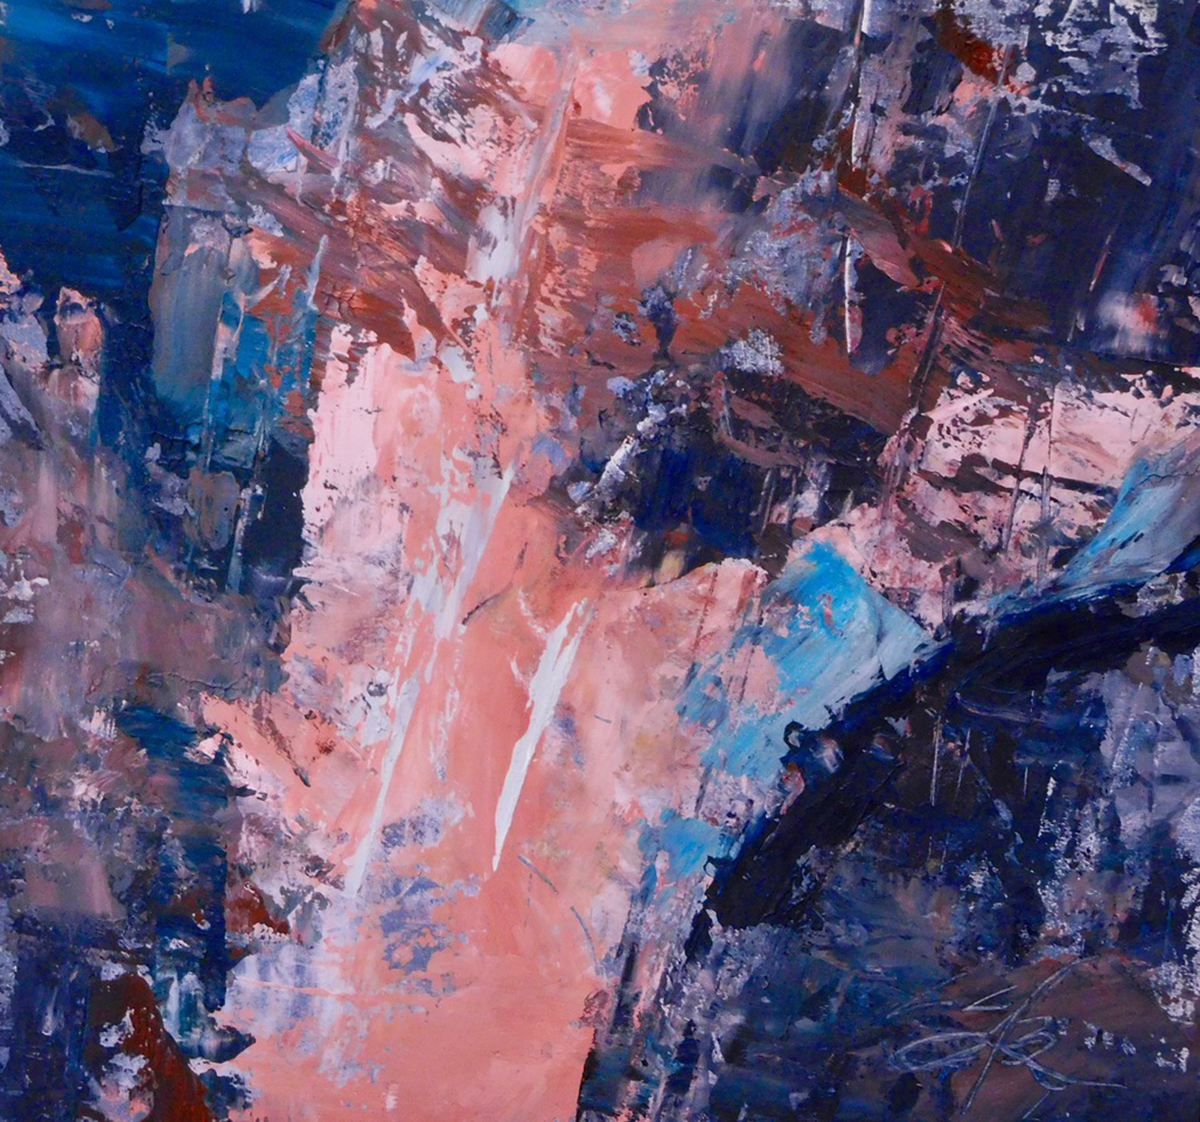 Cathyann Burgess at Asheville Gallery of Art